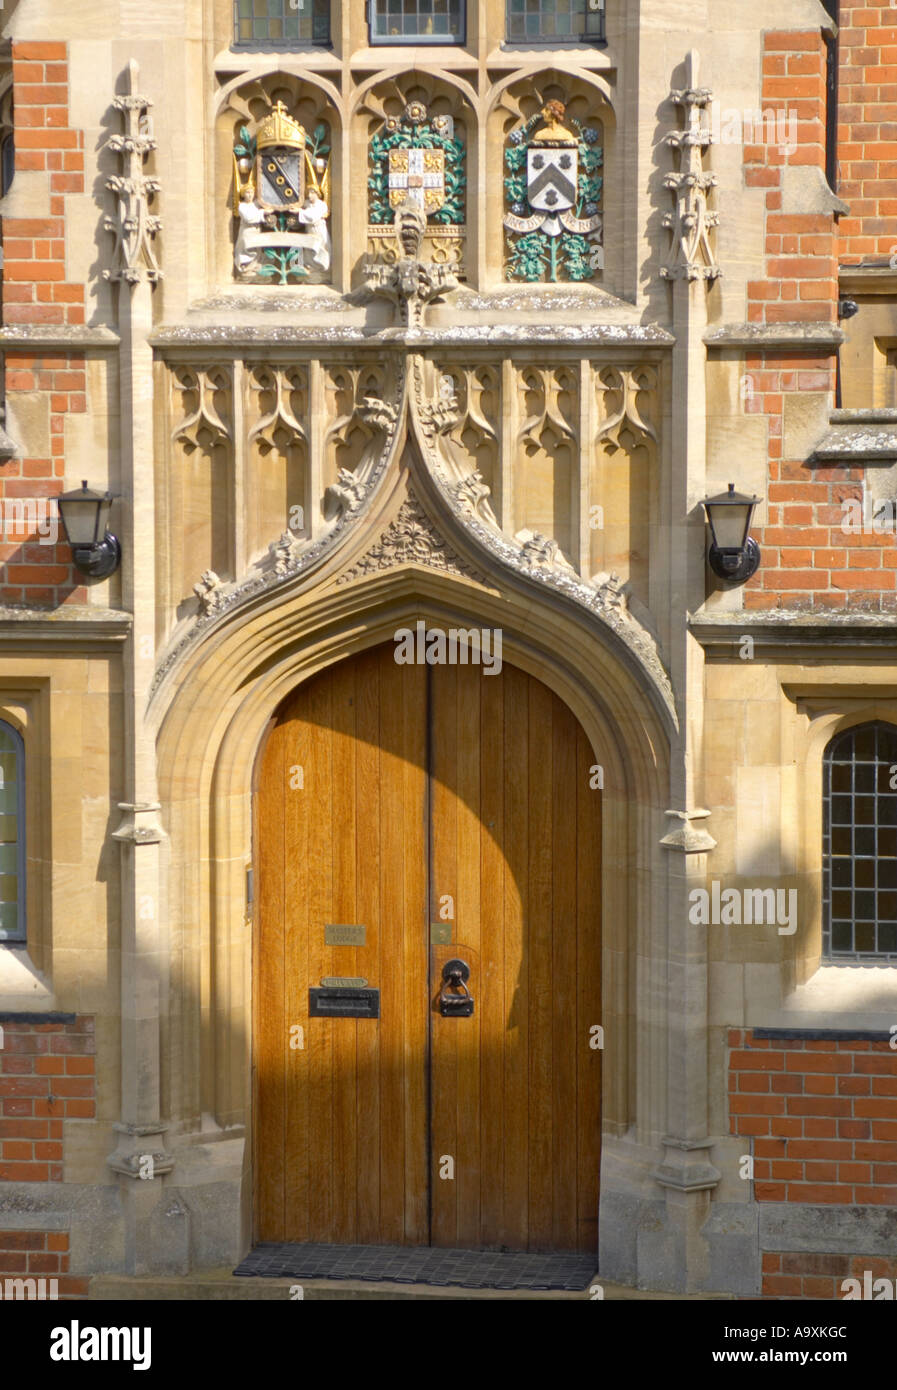 Cambridge University ornate entrance to the masters lodge of Selwyn College - Stock Image